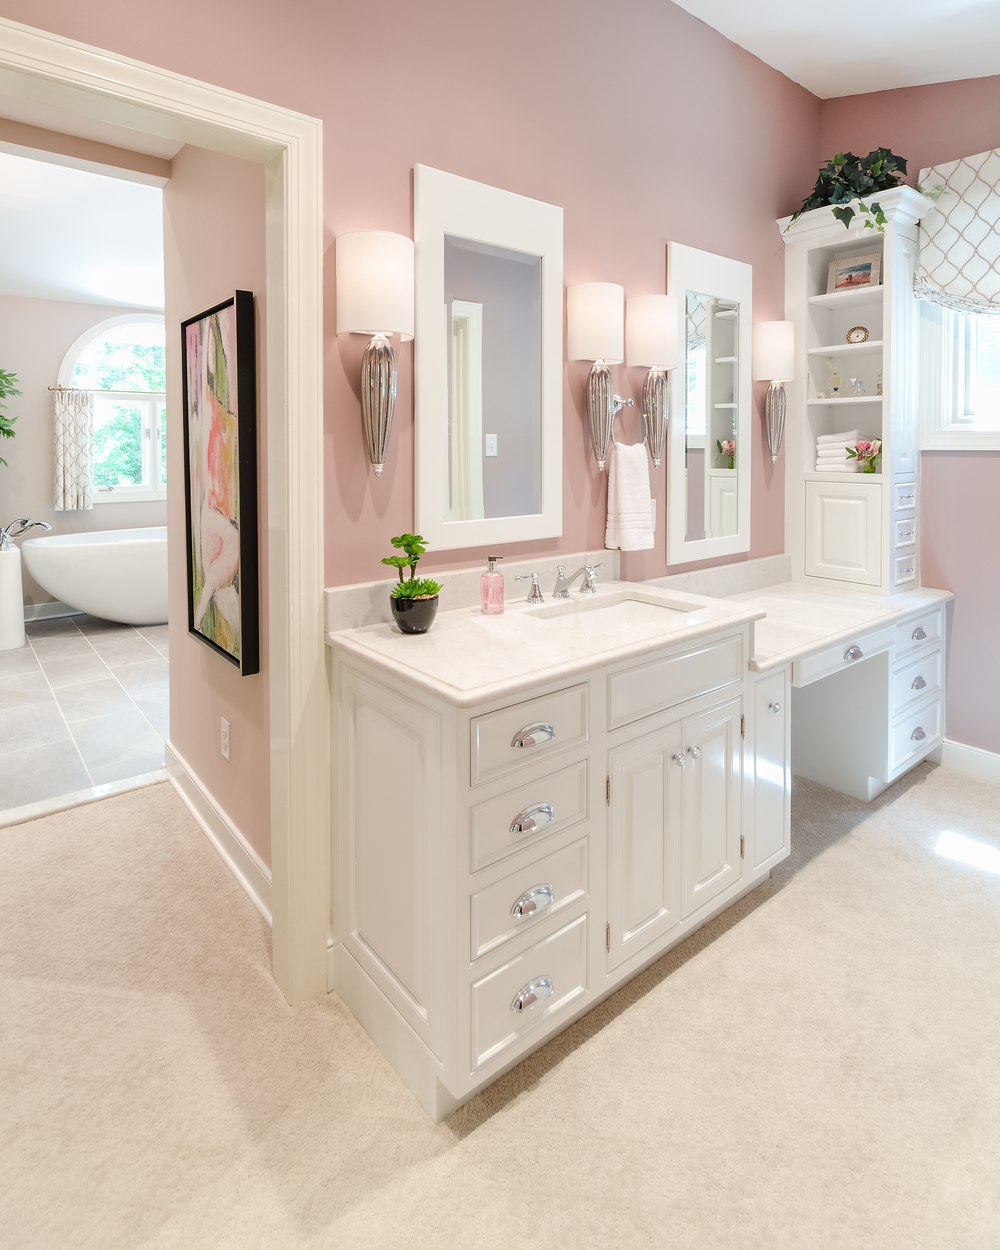 Custom-Kitchens-Wolenberg-Master-Bath-Vanity-2-52214.jpg